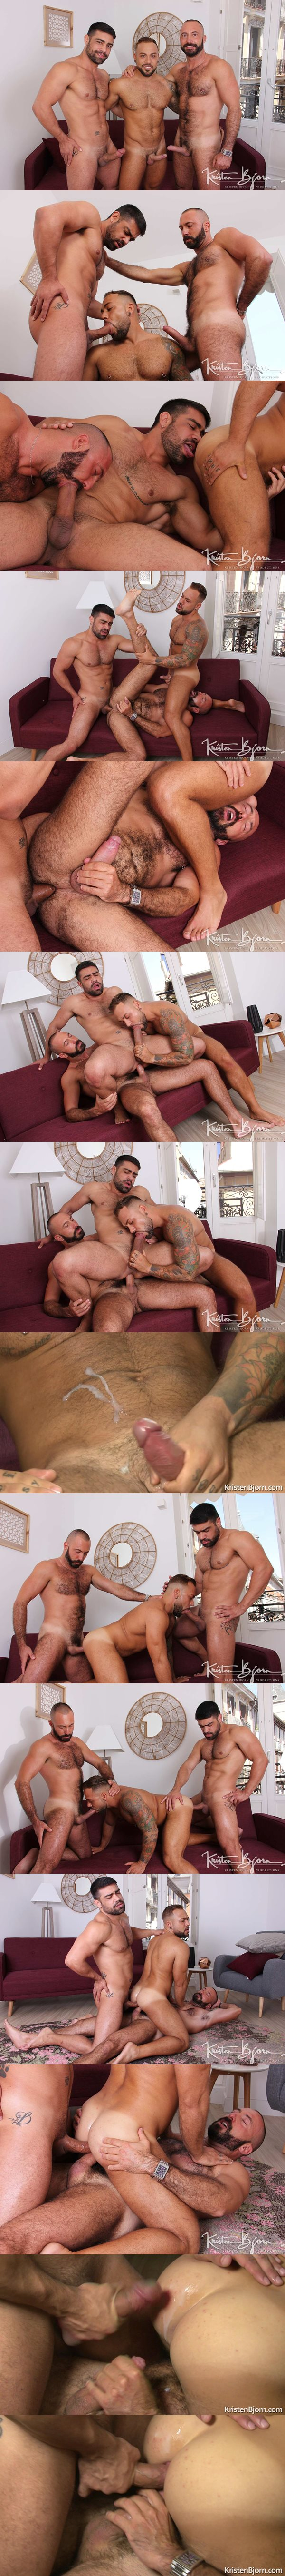 Wagner Vittoria, Sergi Rodriguez and Xavi Garcia bareback each other in Hot Stuff: Deep And Tight at Kristenbjorn 02